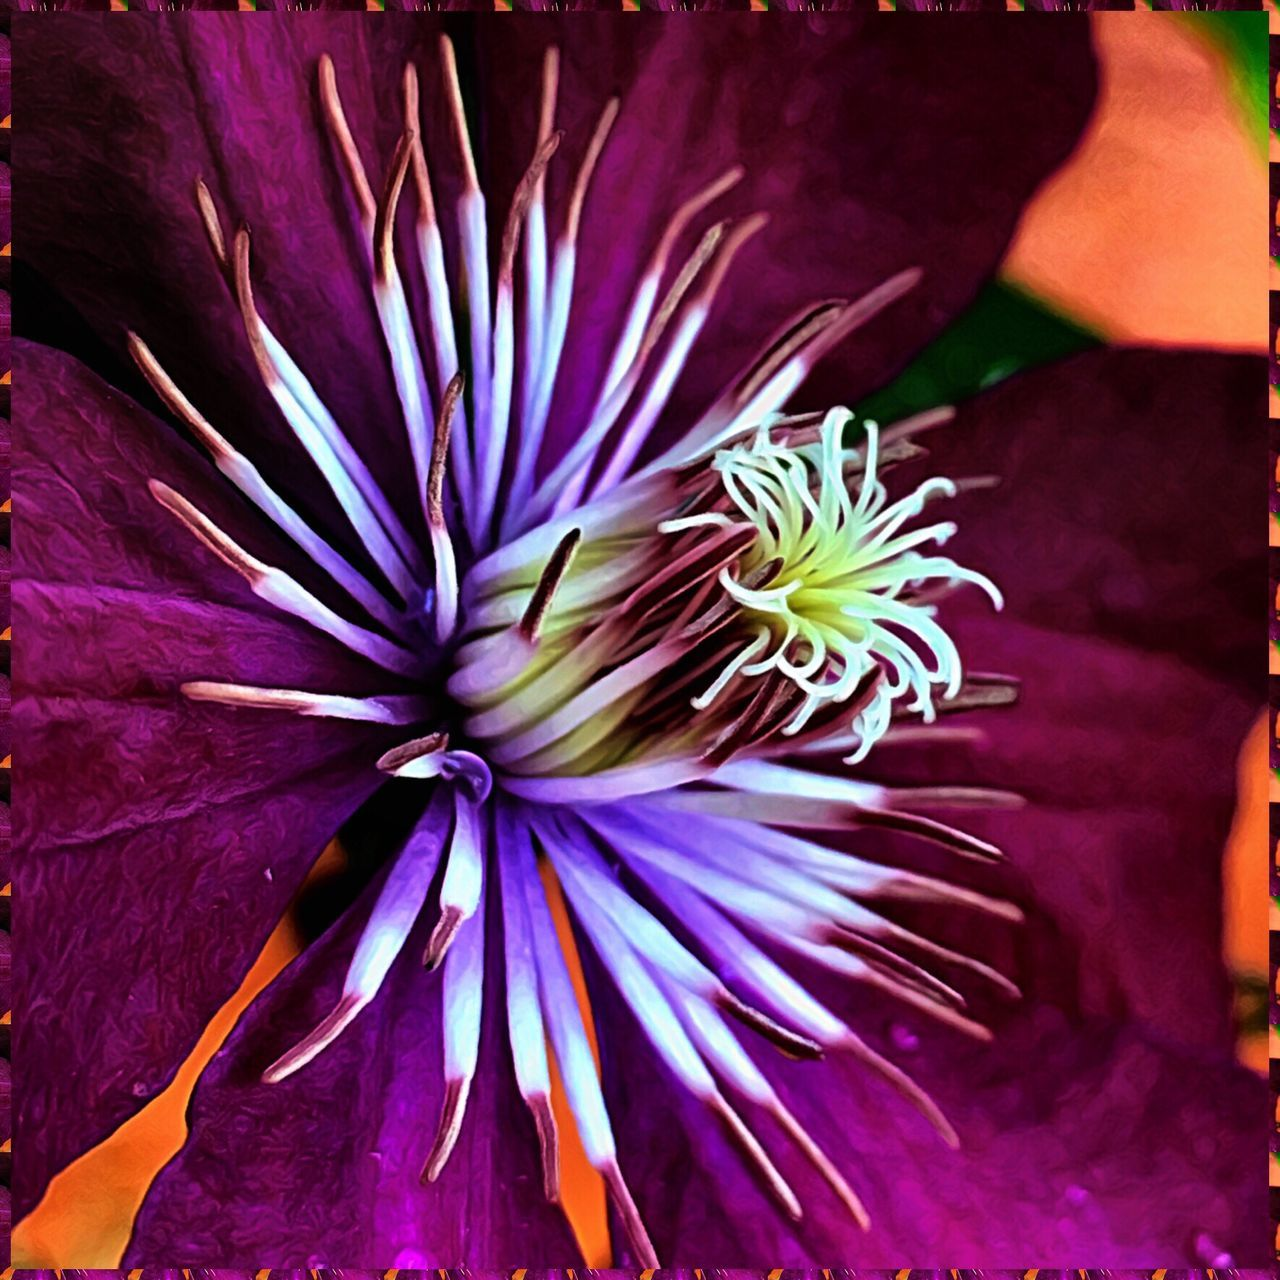 flower, petal, flower head, beauty in nature, fragility, freshness, nature, growth, purple, no people, blooming, plant, close-up, outdoors, day, passion flower